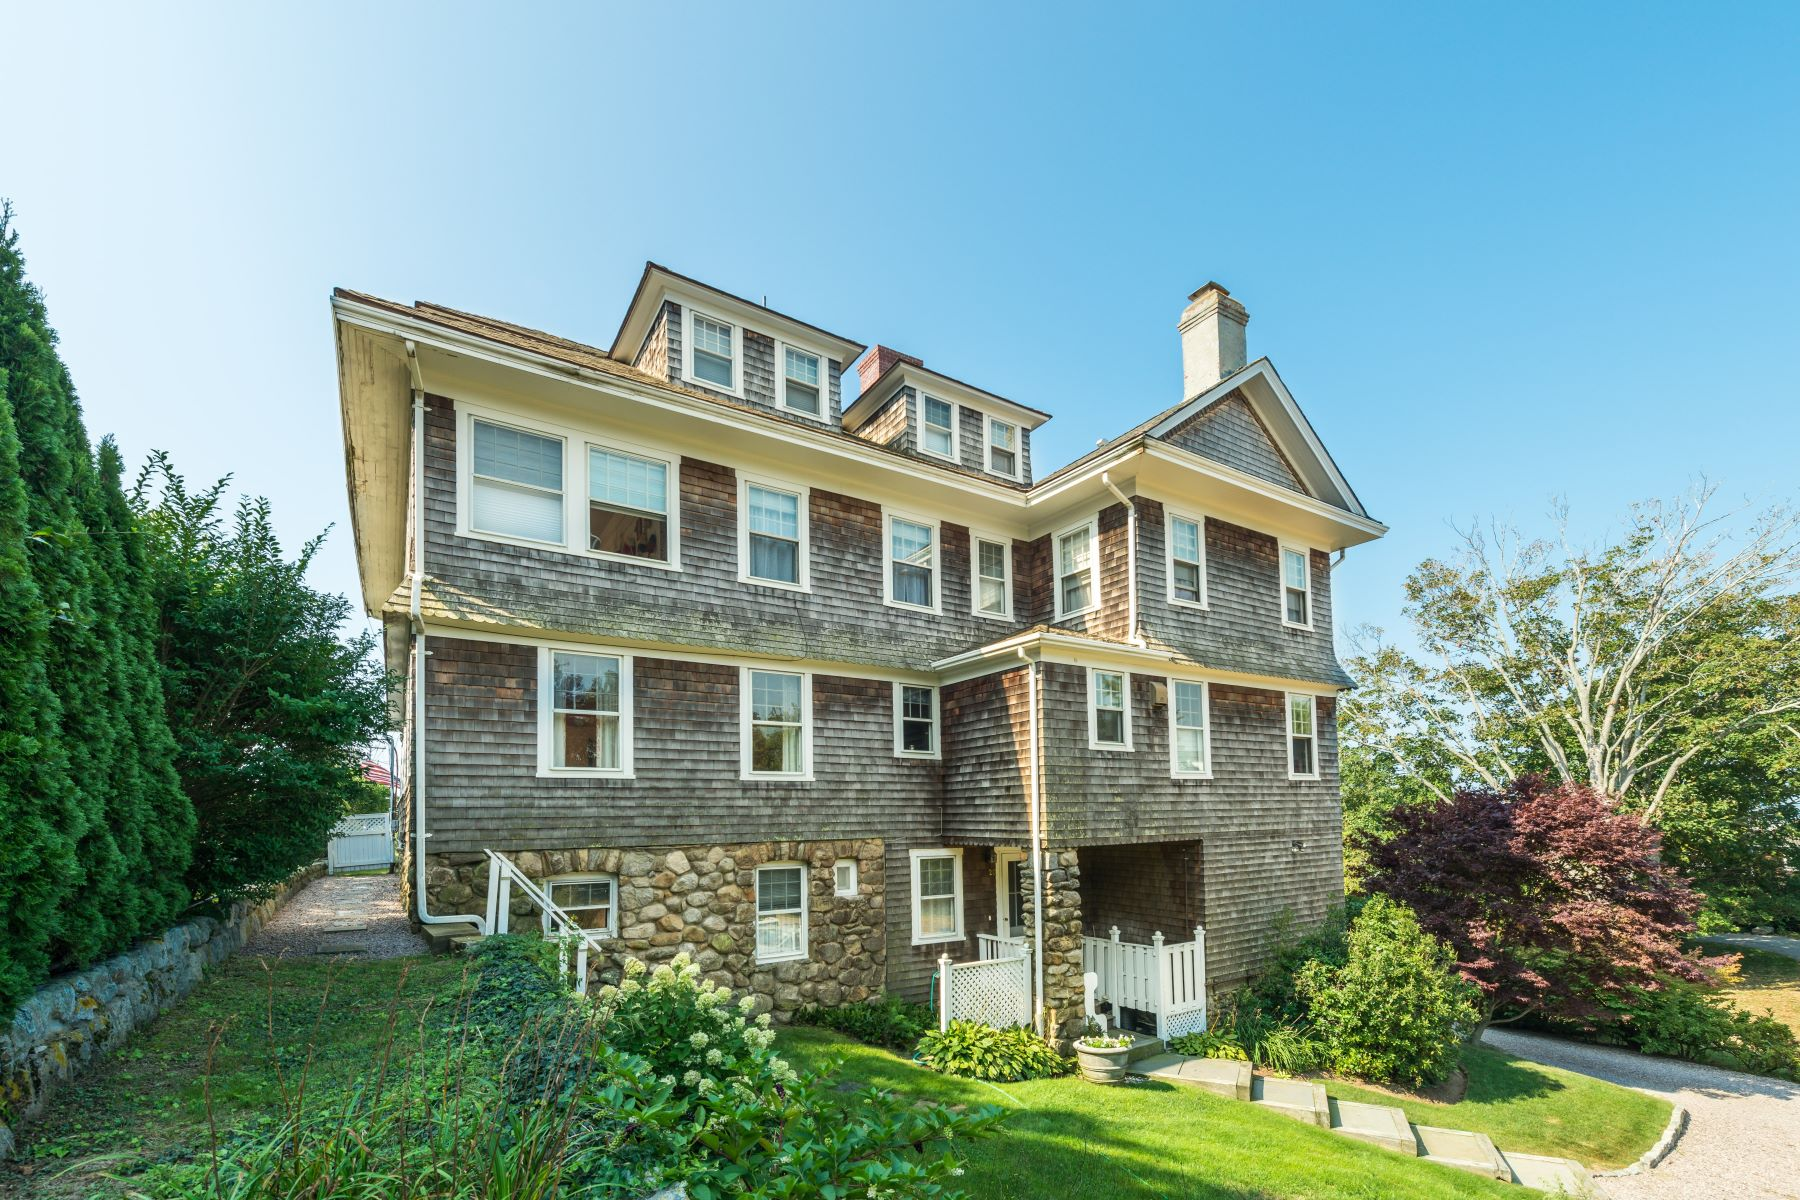 Additional photo for property listing at 20 Plimpton Rd, Westerly, RI 20 Plimpton Rd Westerly, Rhode Island 02891 United States